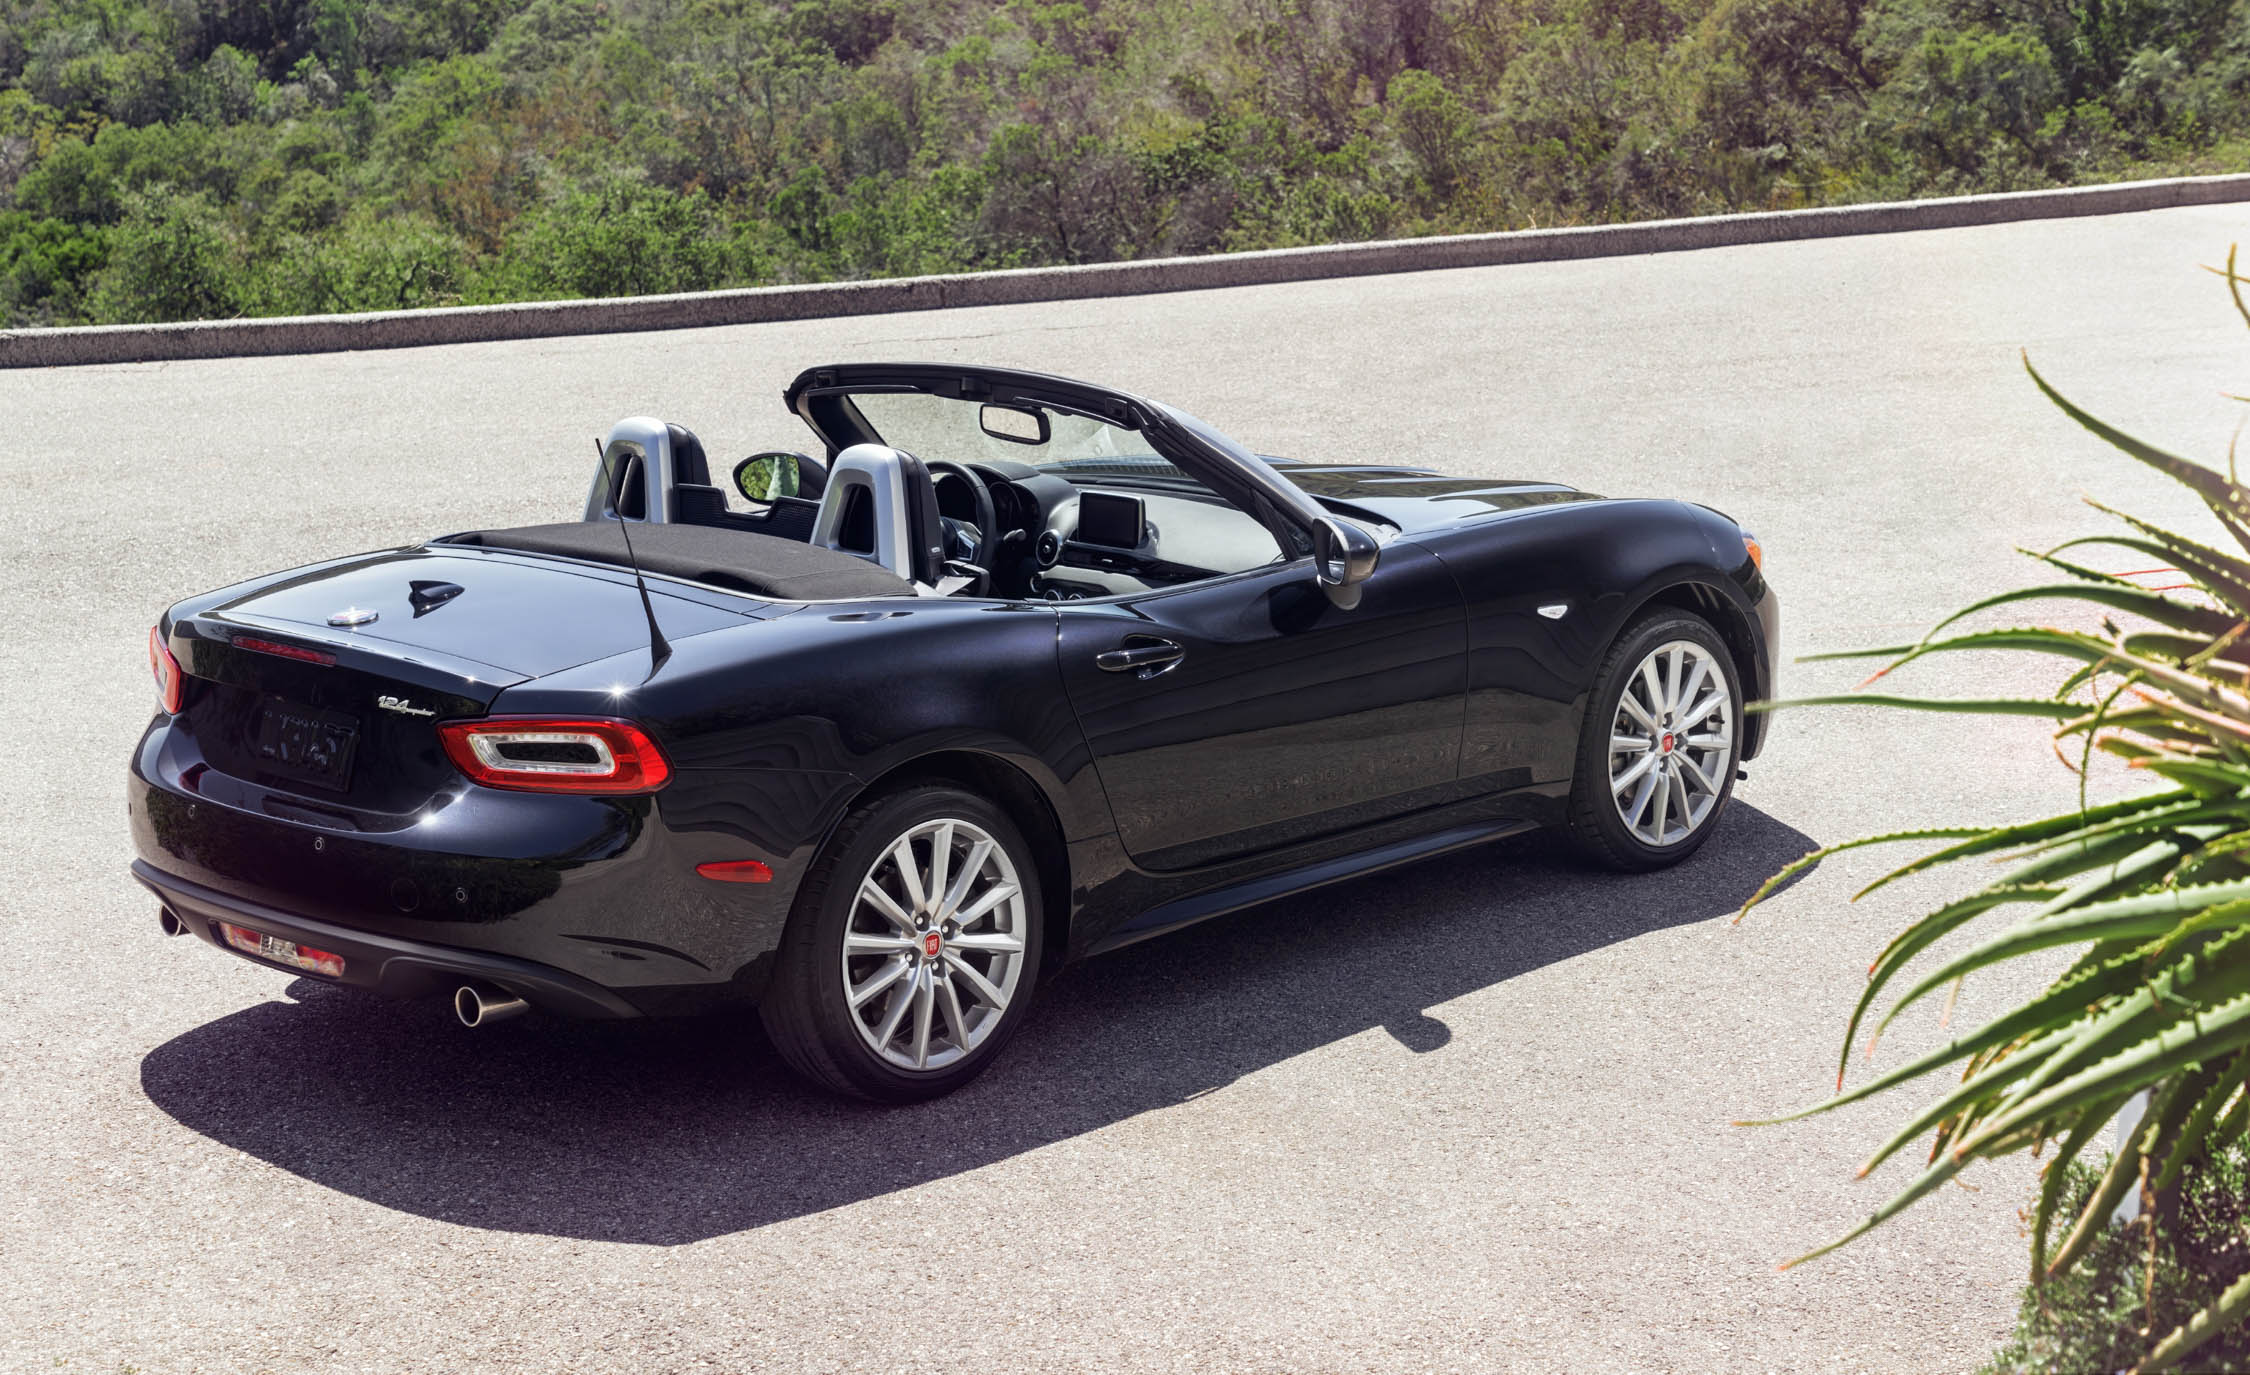 2017 Fiat 124 Spider Black Exterior Preview (View 16 of 23)